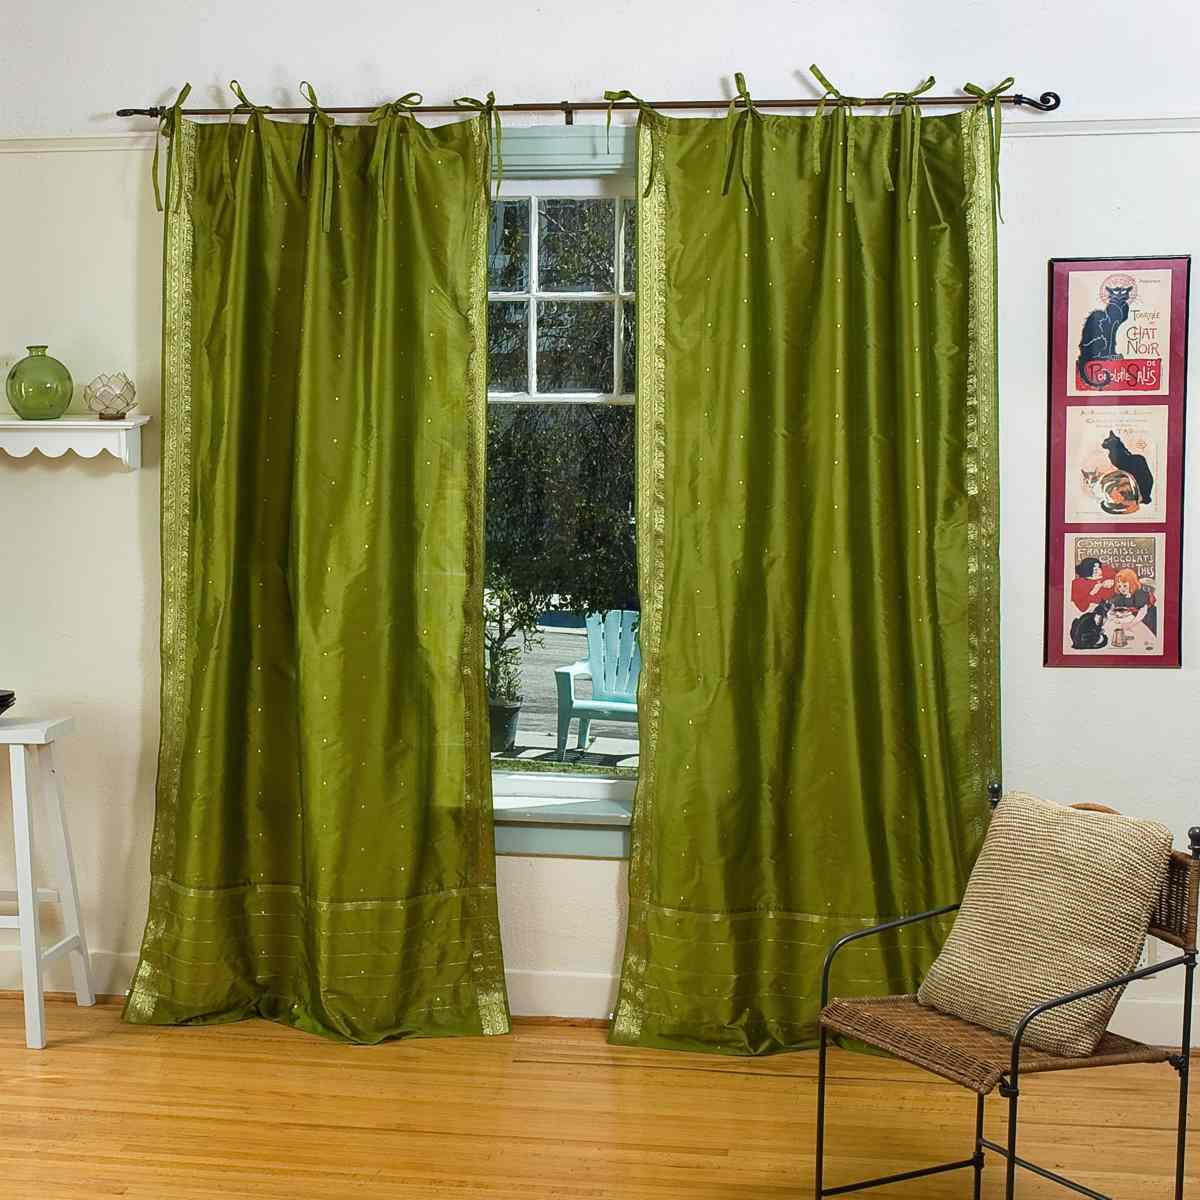 option at modern drapes or with fabric made diy from ways a dressing excellent an top chair decorating windows voile white take in beautiful ideas to sheer curtains and for rooms chiffon lace tie you on traditional window that door dress are